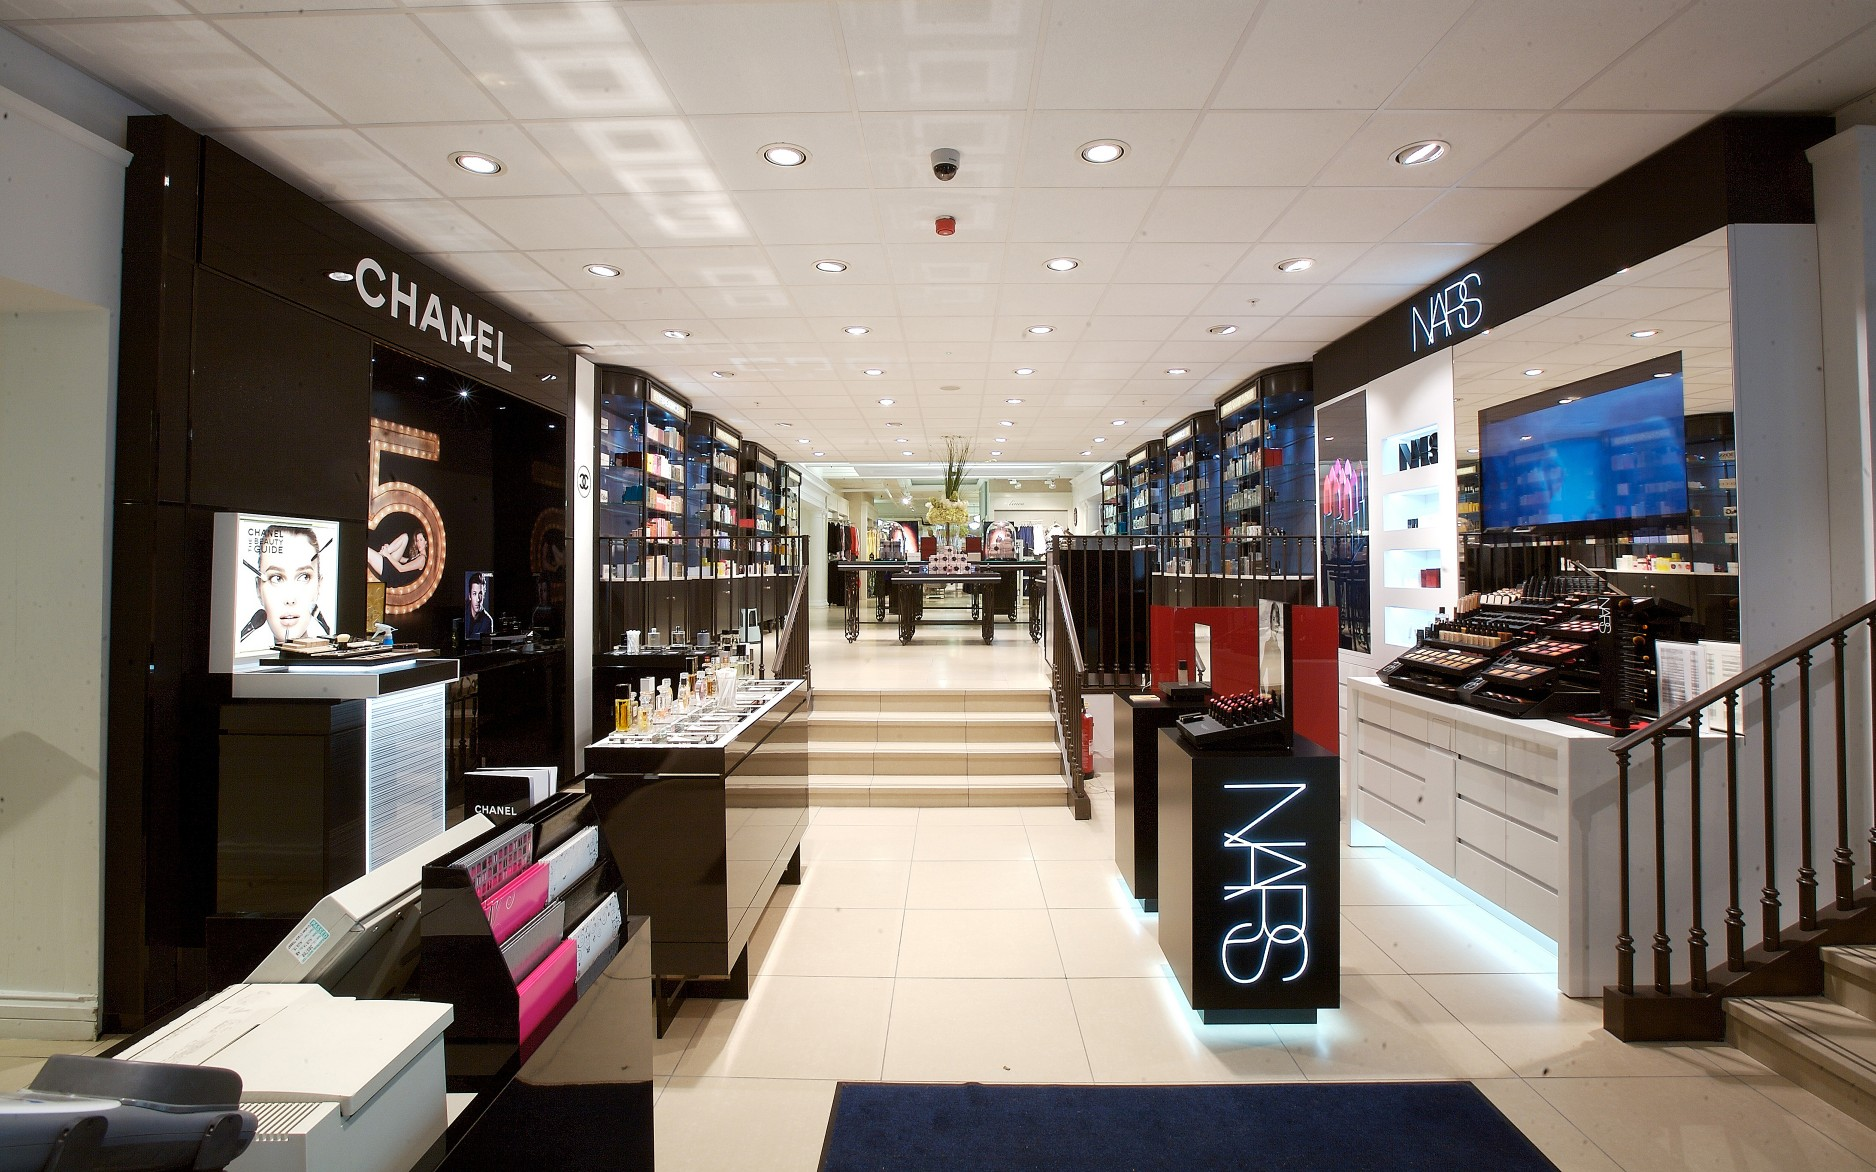 House of Frazer (HoF) in Bath, UK, wanted a new lighting design that would improve the shopping experience at its cosmetics department.